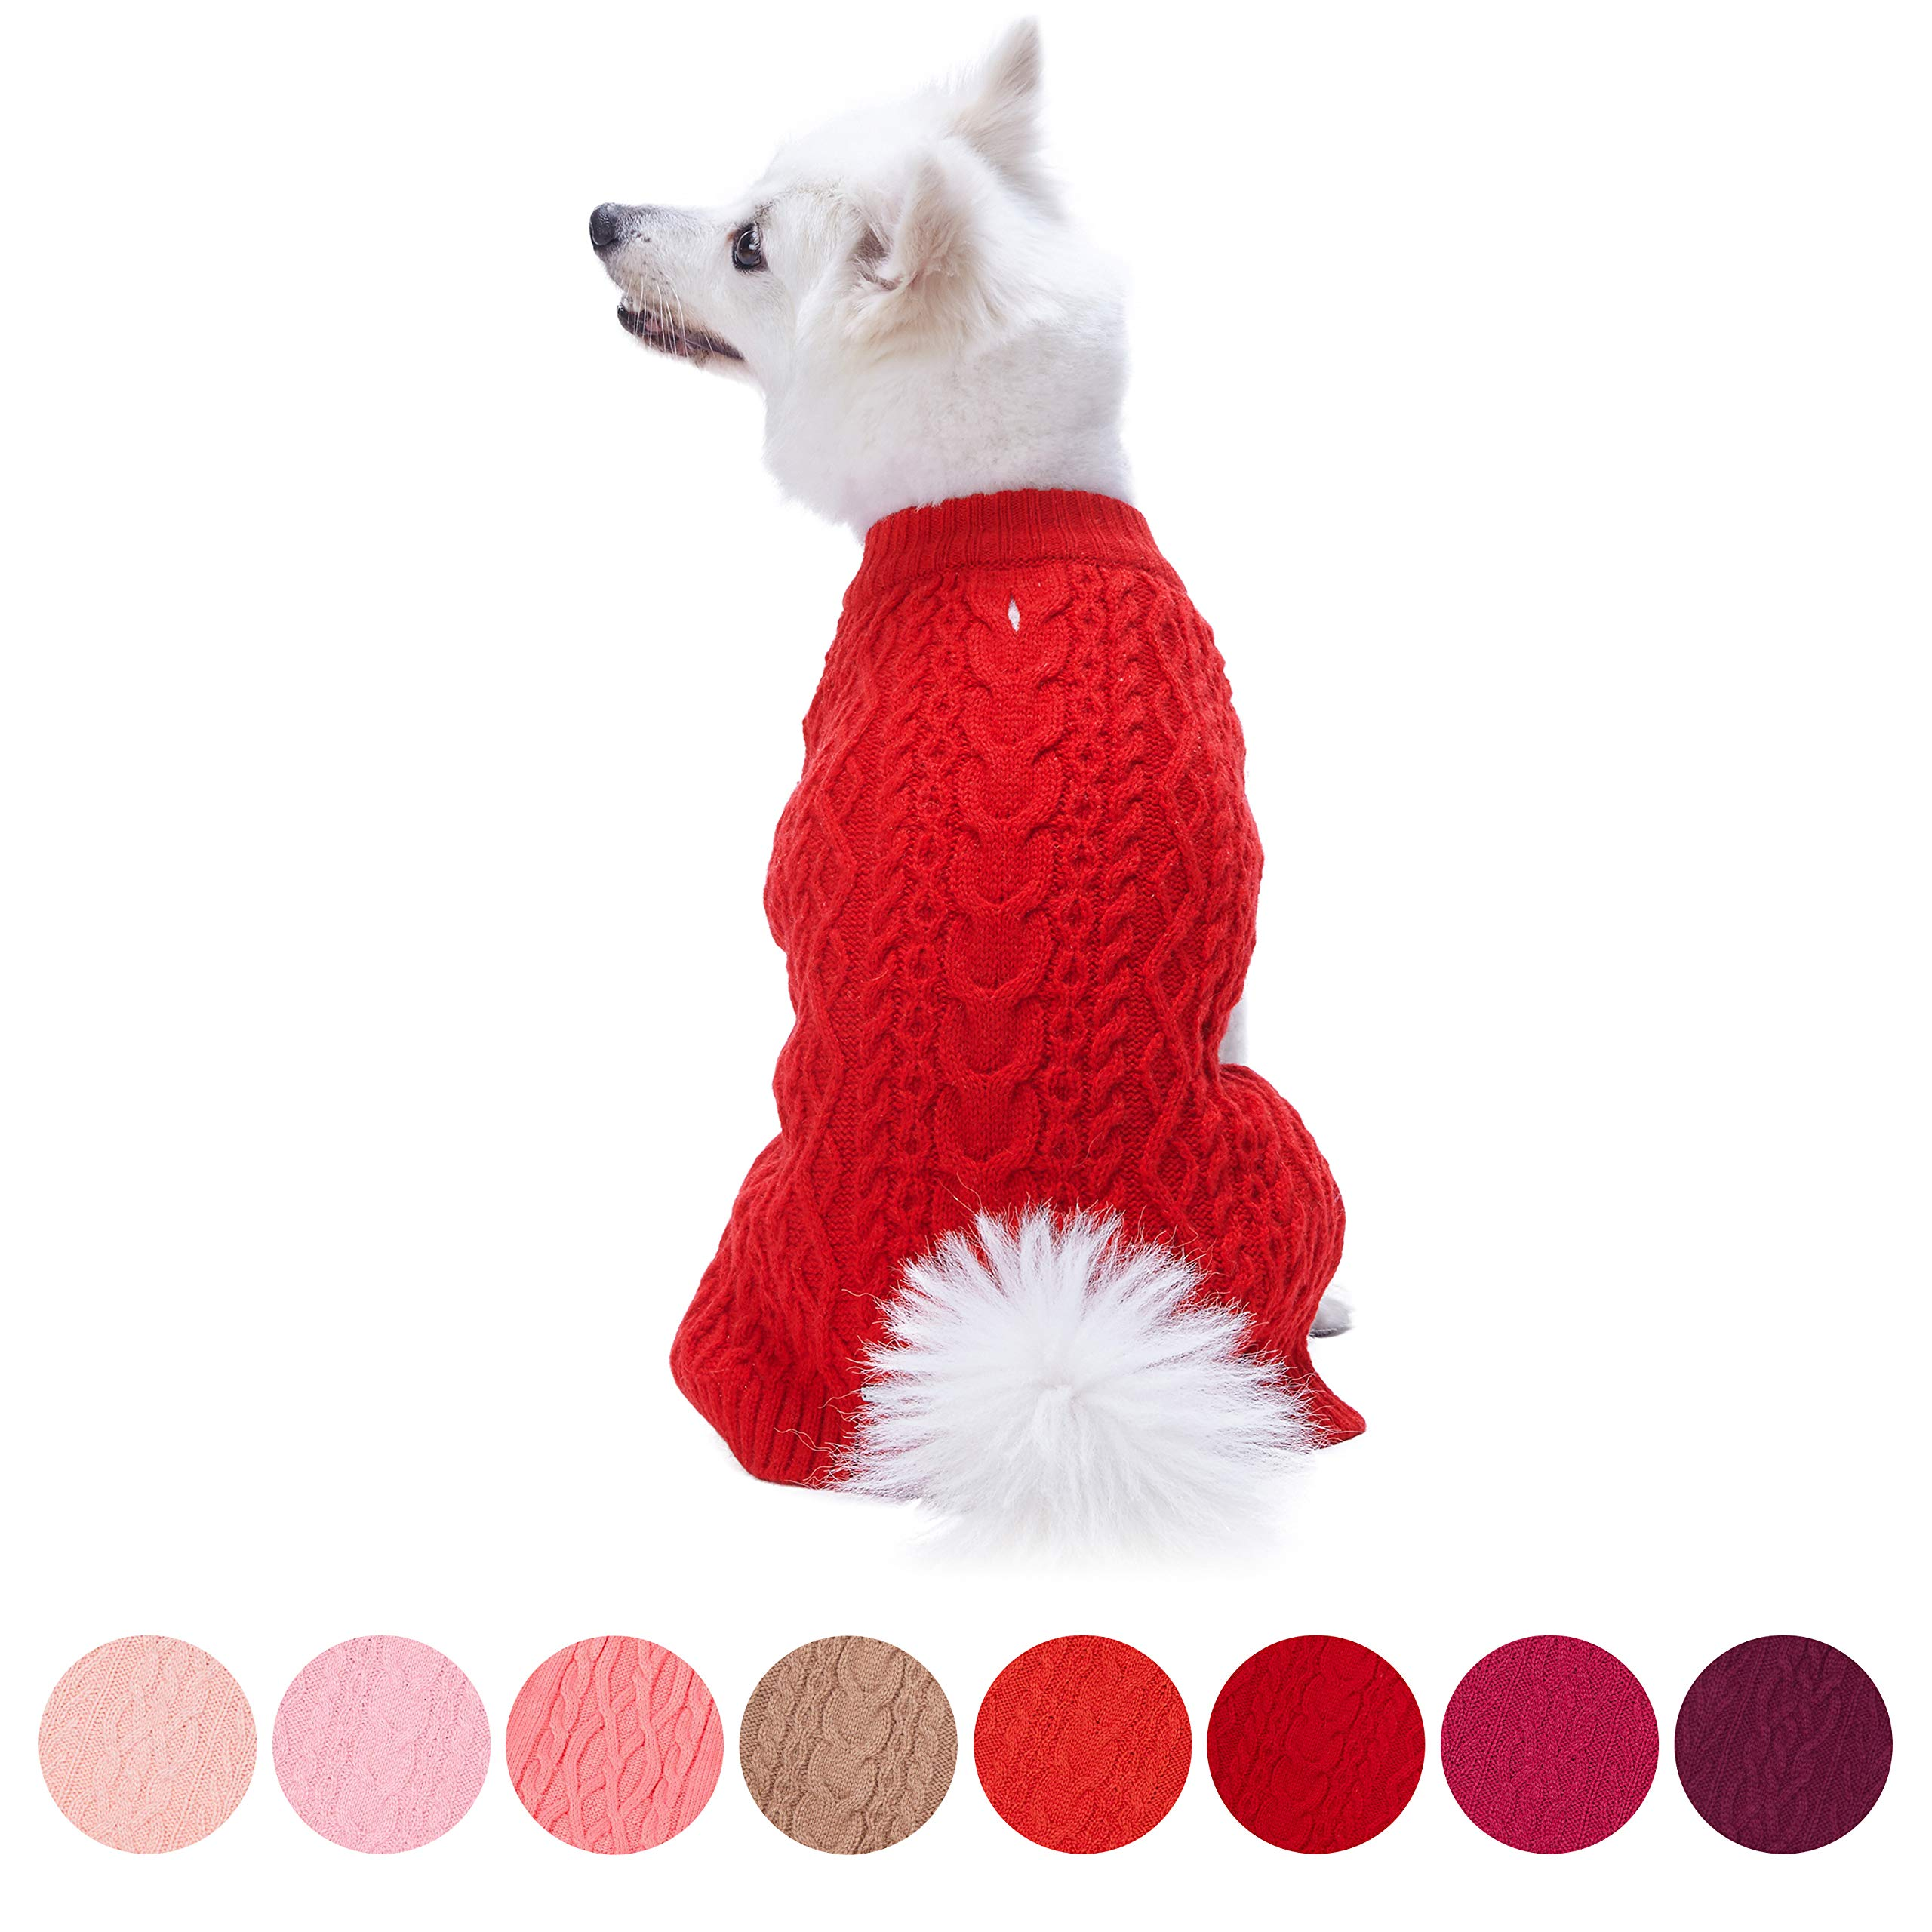 Blueberry Pet 16 Colors Classic Wool Blend Cable Knit Pullover Dog Sweater in Red Danger, Back Length 12'', Pack of 1 Clothes for Dogs